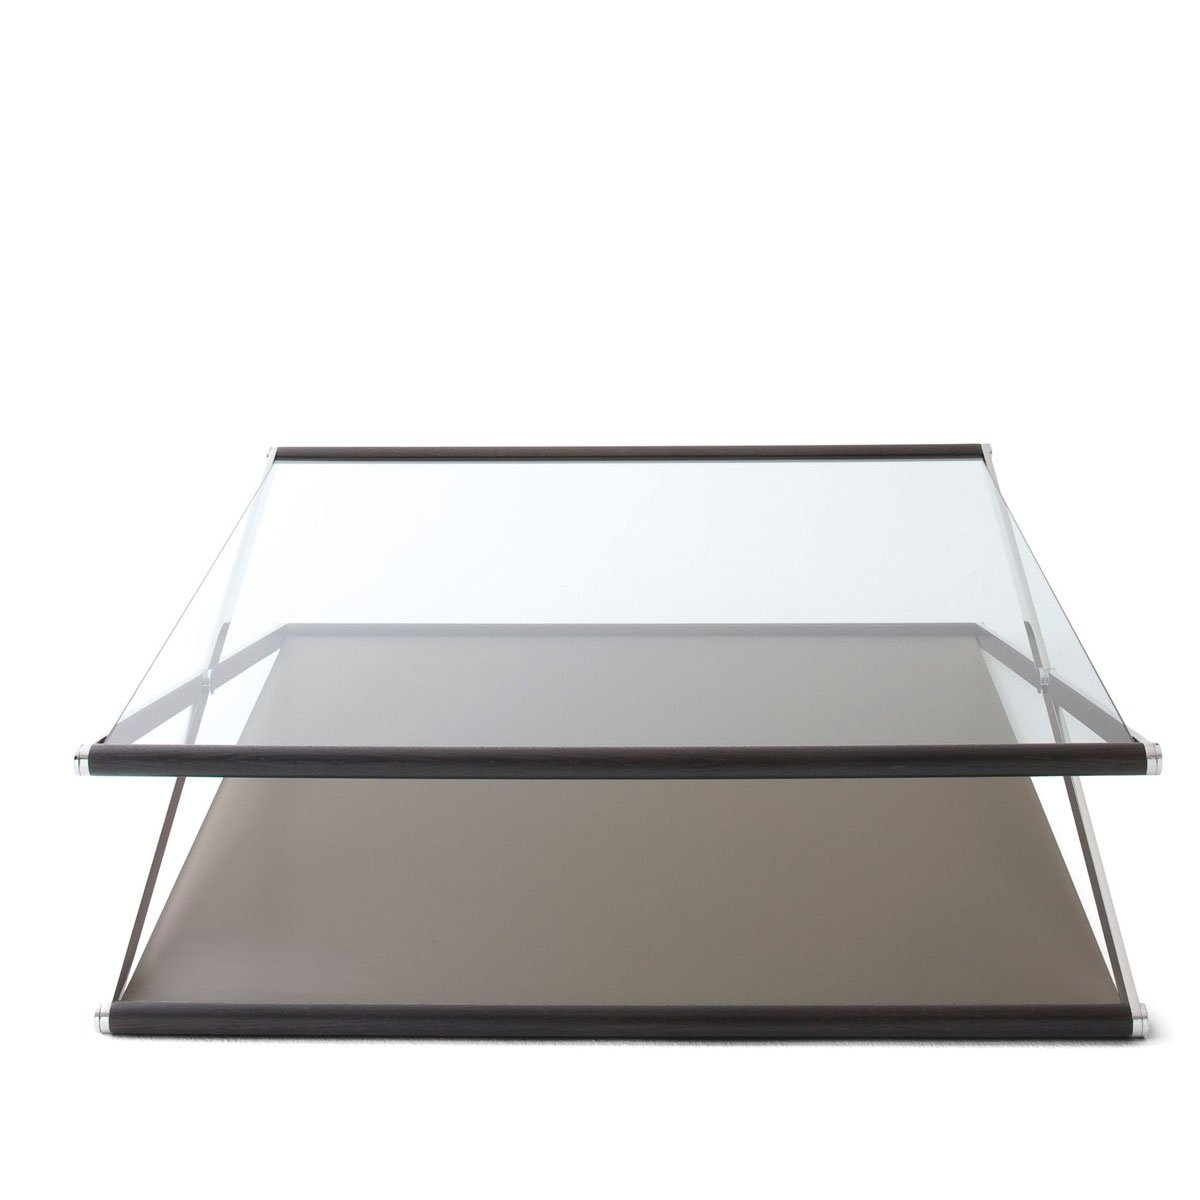 Nox Glass Wood And Metal Coffee Table By Gallotti Radic Klarity Glass Furniture